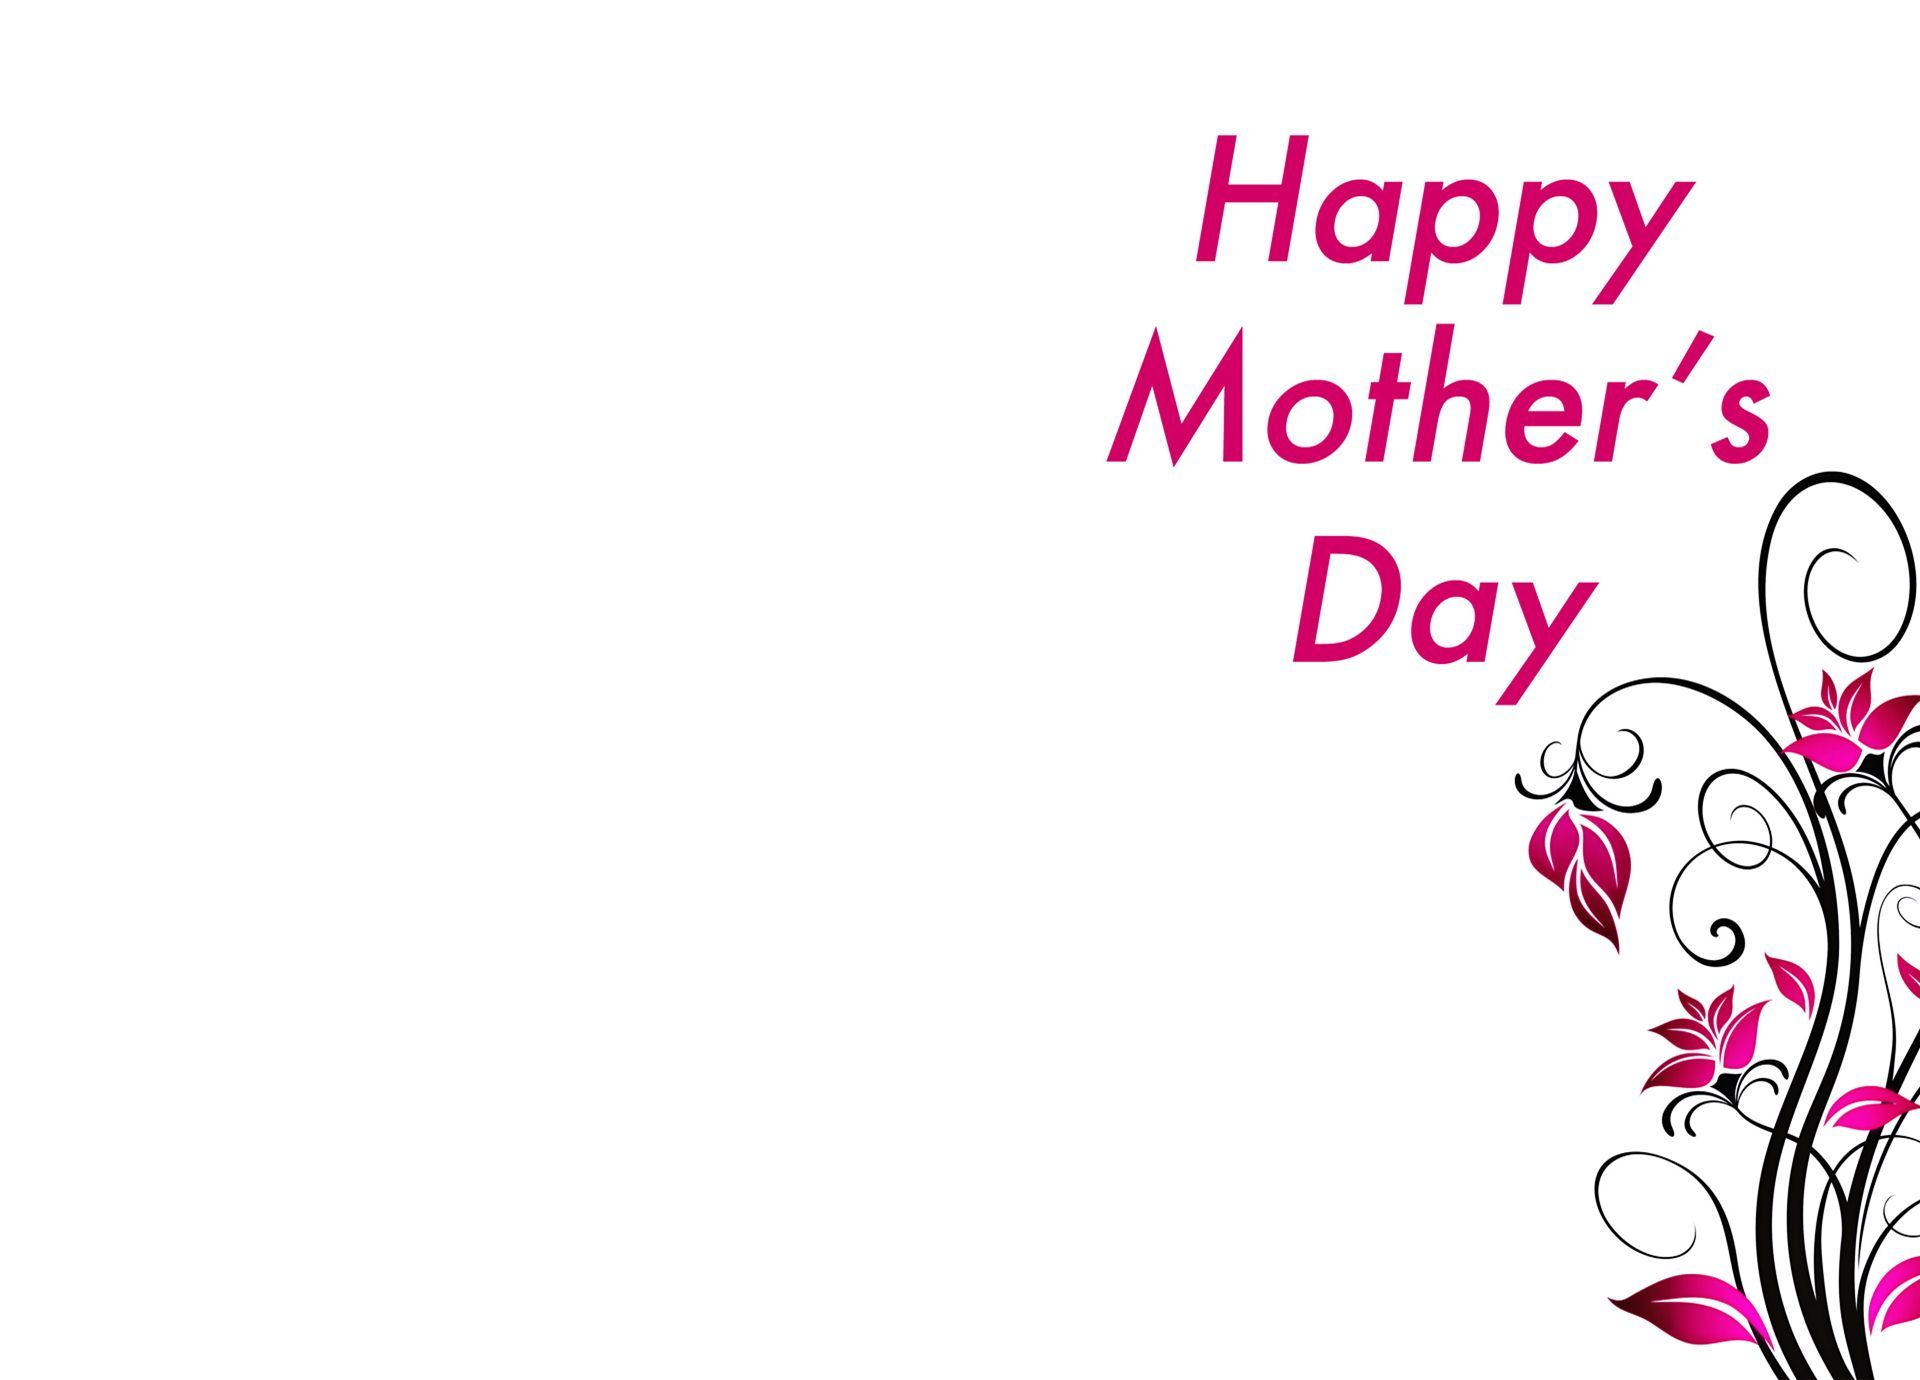 Mothers Day Wallpapers  MotherS Day Backgrounds